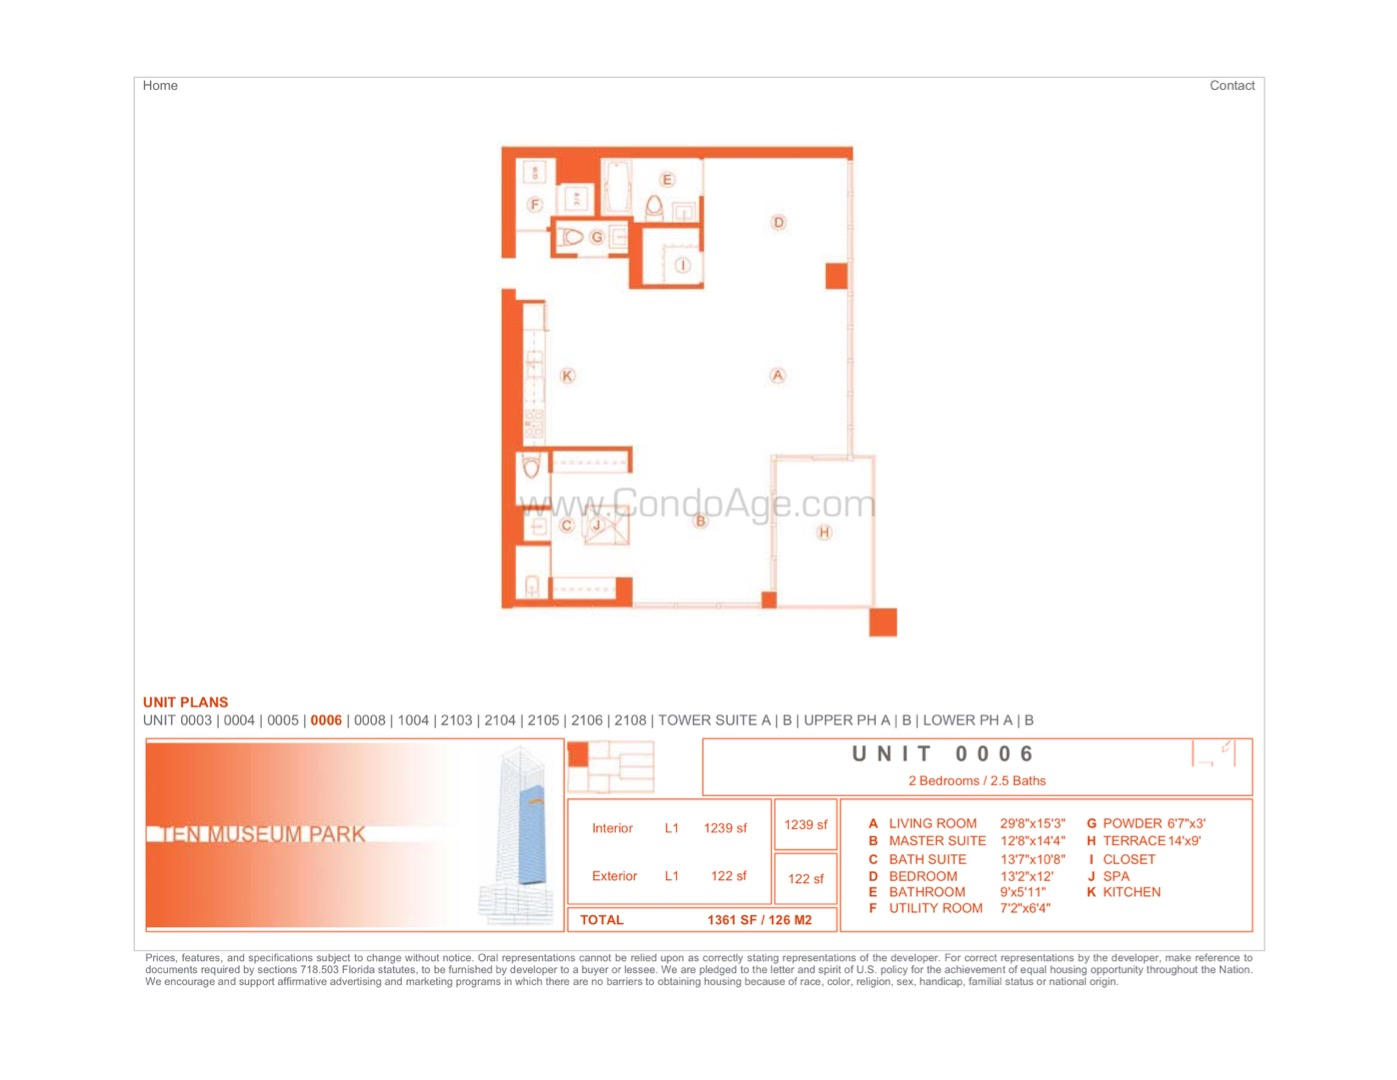 06 floor plan image